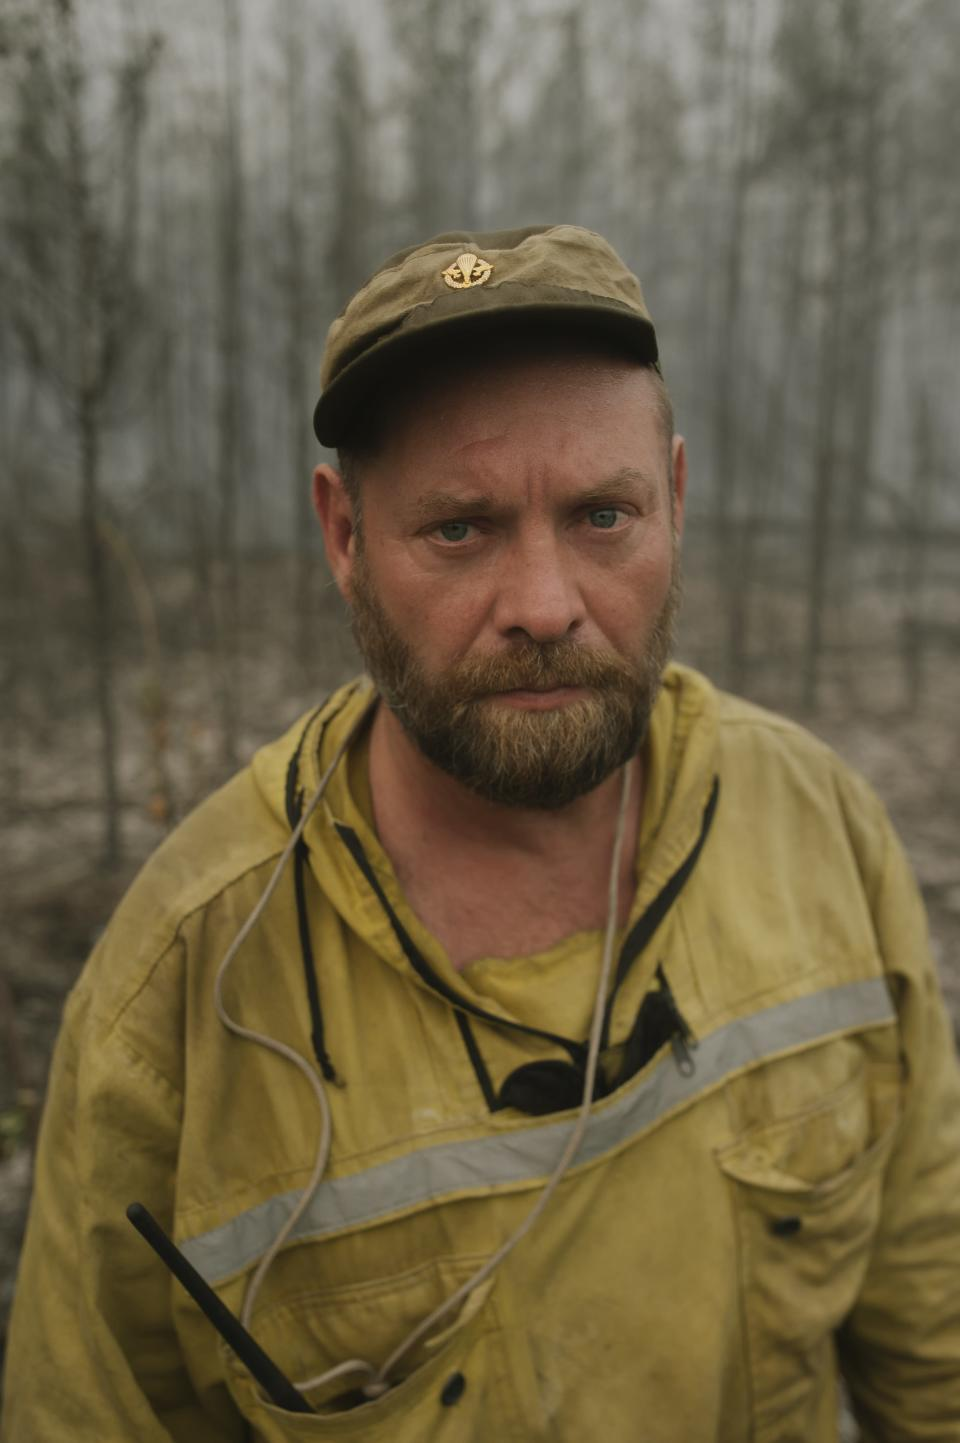 """Denis Markov, an instructor at a base for paratrooper firefighters from Tomsk speaks during his interview fro the Associated Press at Gorny Ulus area west of Yakutsk, Russia, Friday, July 23, 2021. """"Volunteers are doing a great job. Their help is significant because the area and distances are quite large, so the more people there are, the more effective our efforts are to control the fires,"""" said Dennis Markov. The hardest hit area is the Sakha Republic, also known as Yakutia, in the far northeast of Russia, about 5,000 kilometers (3,200 miles) from Moscow. (AP Photo/Ivan Nikiforov)"""